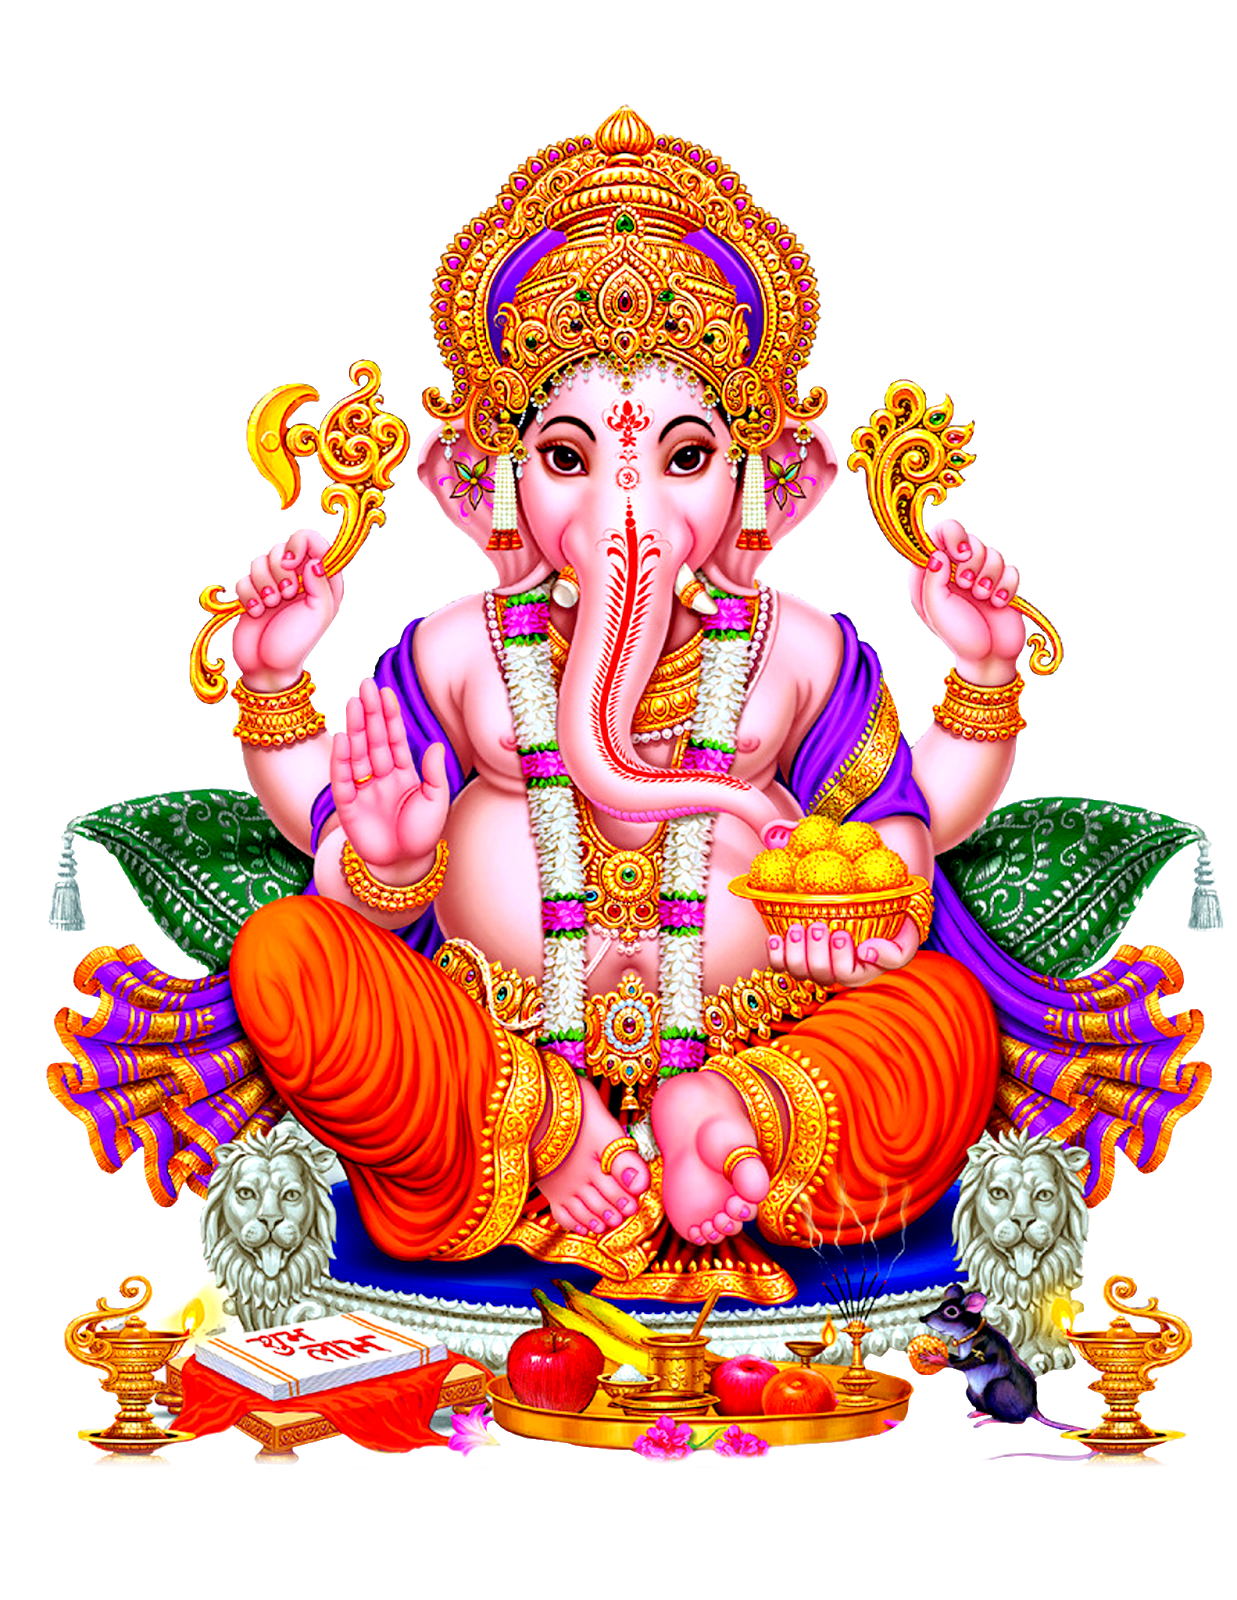 Lord Vinayaka Png Images Free Download Hd Lord Ganesh Images For Banner Designs Png Pot Vector Images Floral Designs God Images Hd 4k Png Religious Images Festival Vectors For Free